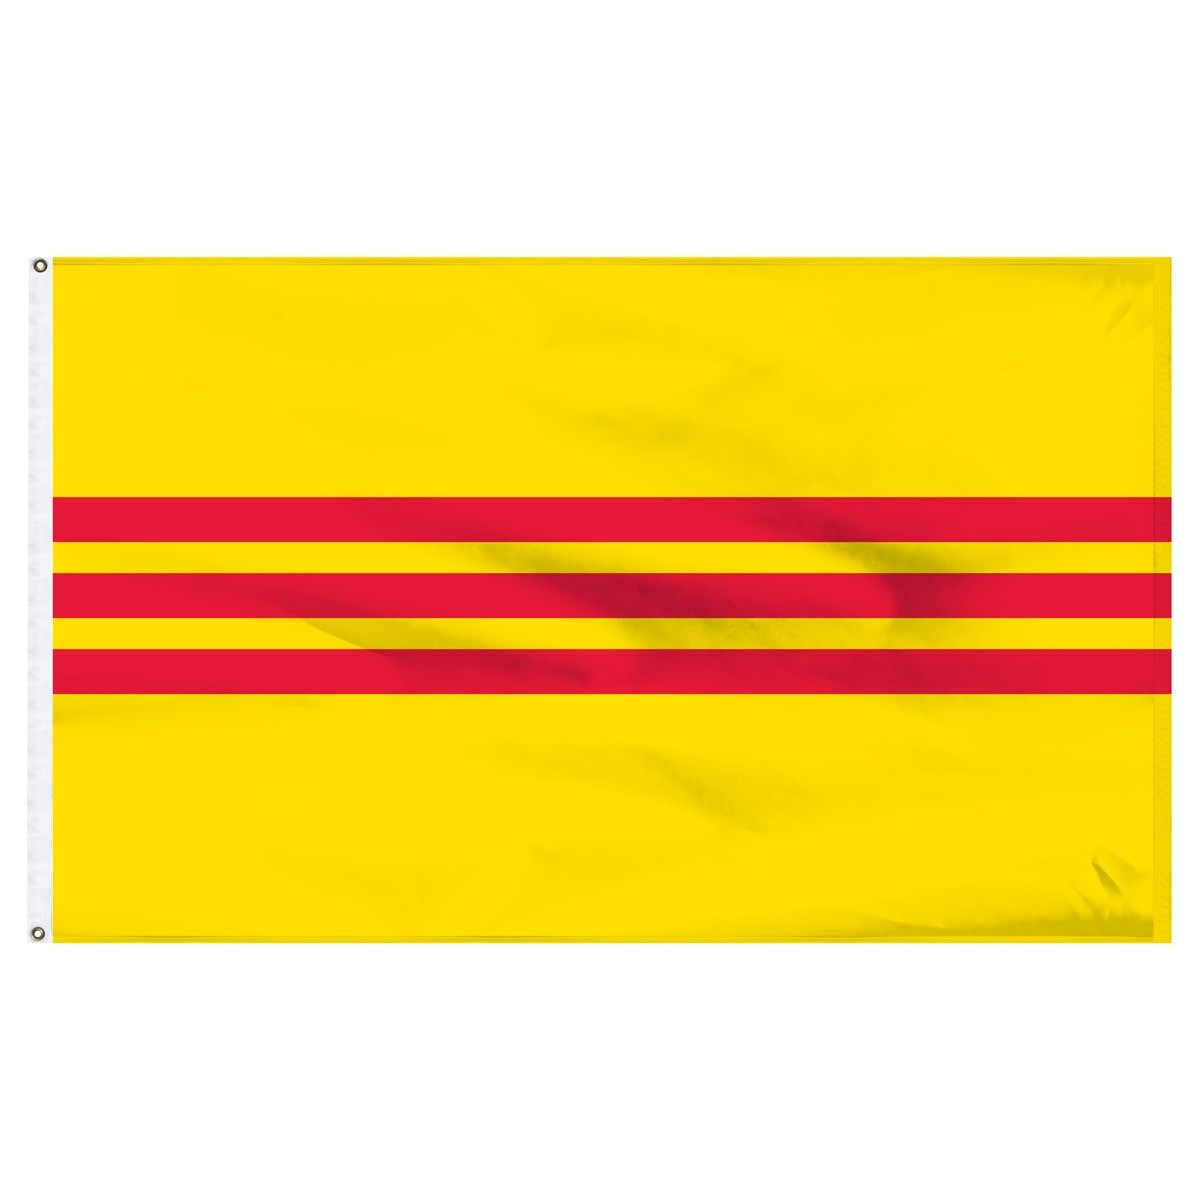 South Vietnam 2' x 3' High Quality Outdoor Nylon Flag